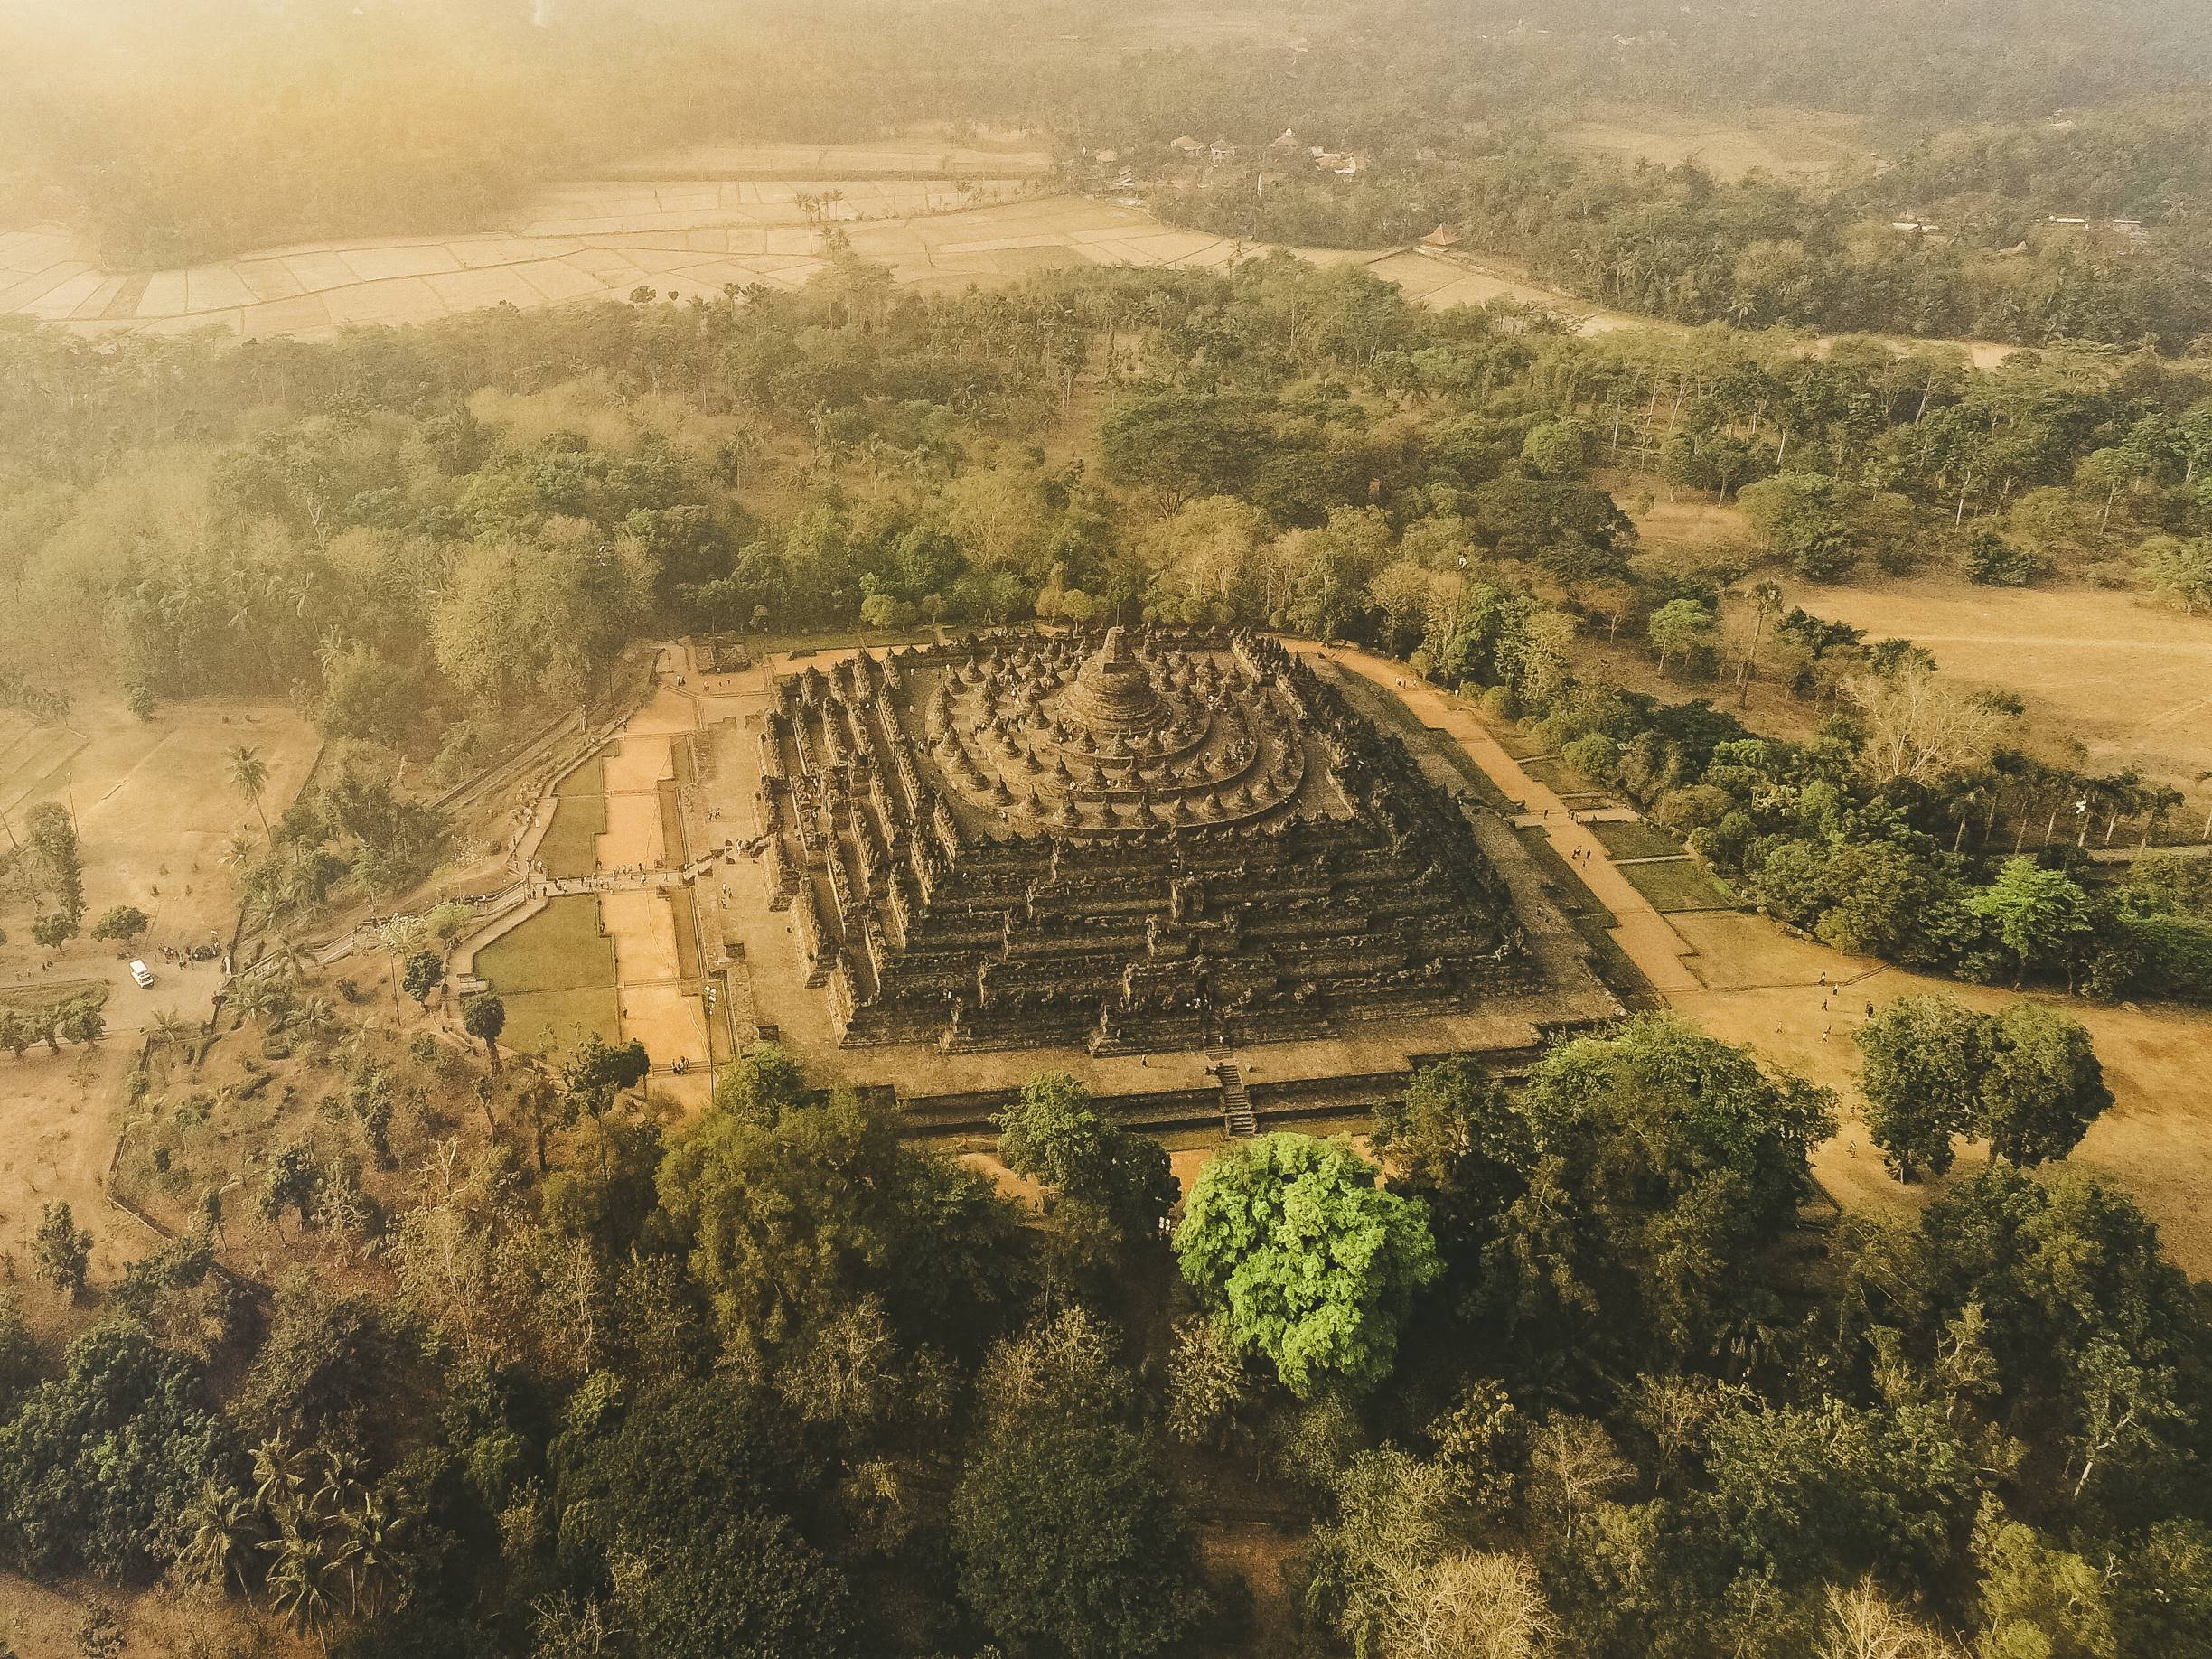 borobudur sunrise tour, borobudur sunrise, borobudur, biggest buddhist temple, buddhist temple indonesia, borobudur indonesia, trip of wonders 2018, plataran heritage hotel borobudur